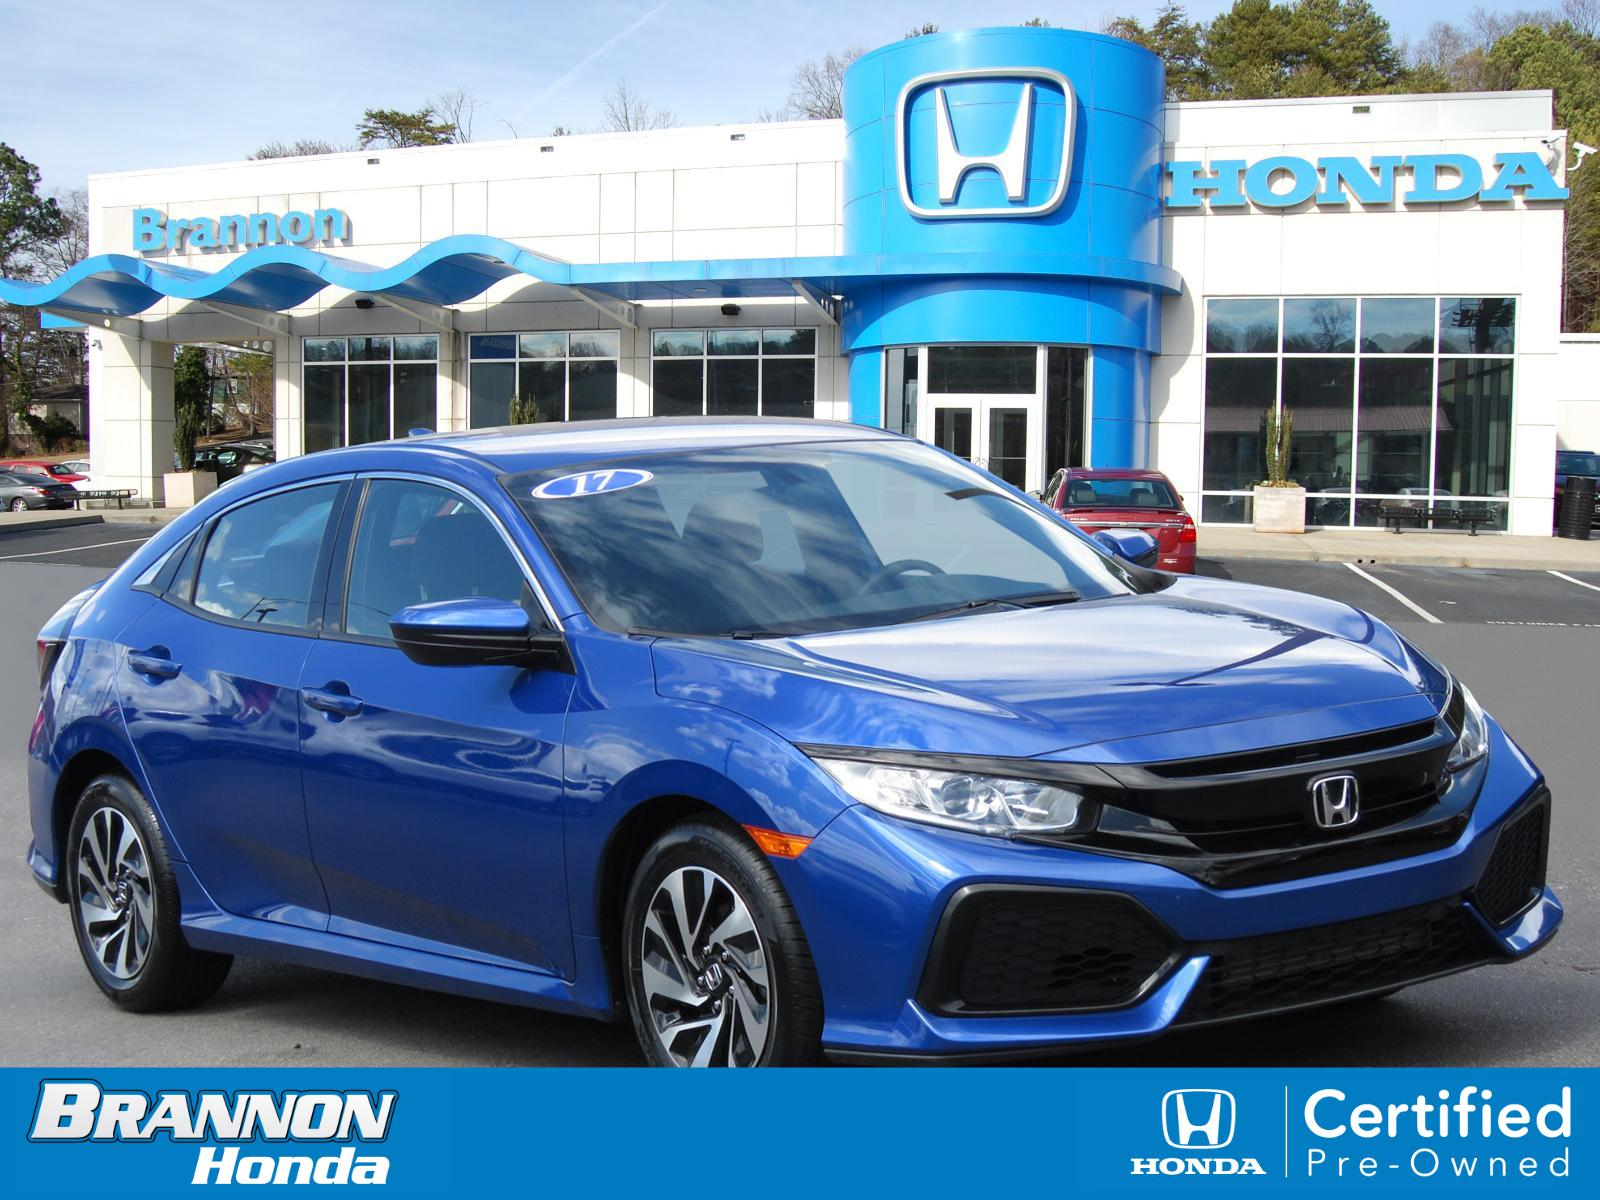 Certified Pre-Owned 2017 Honda Civic Hatchback LX CVT